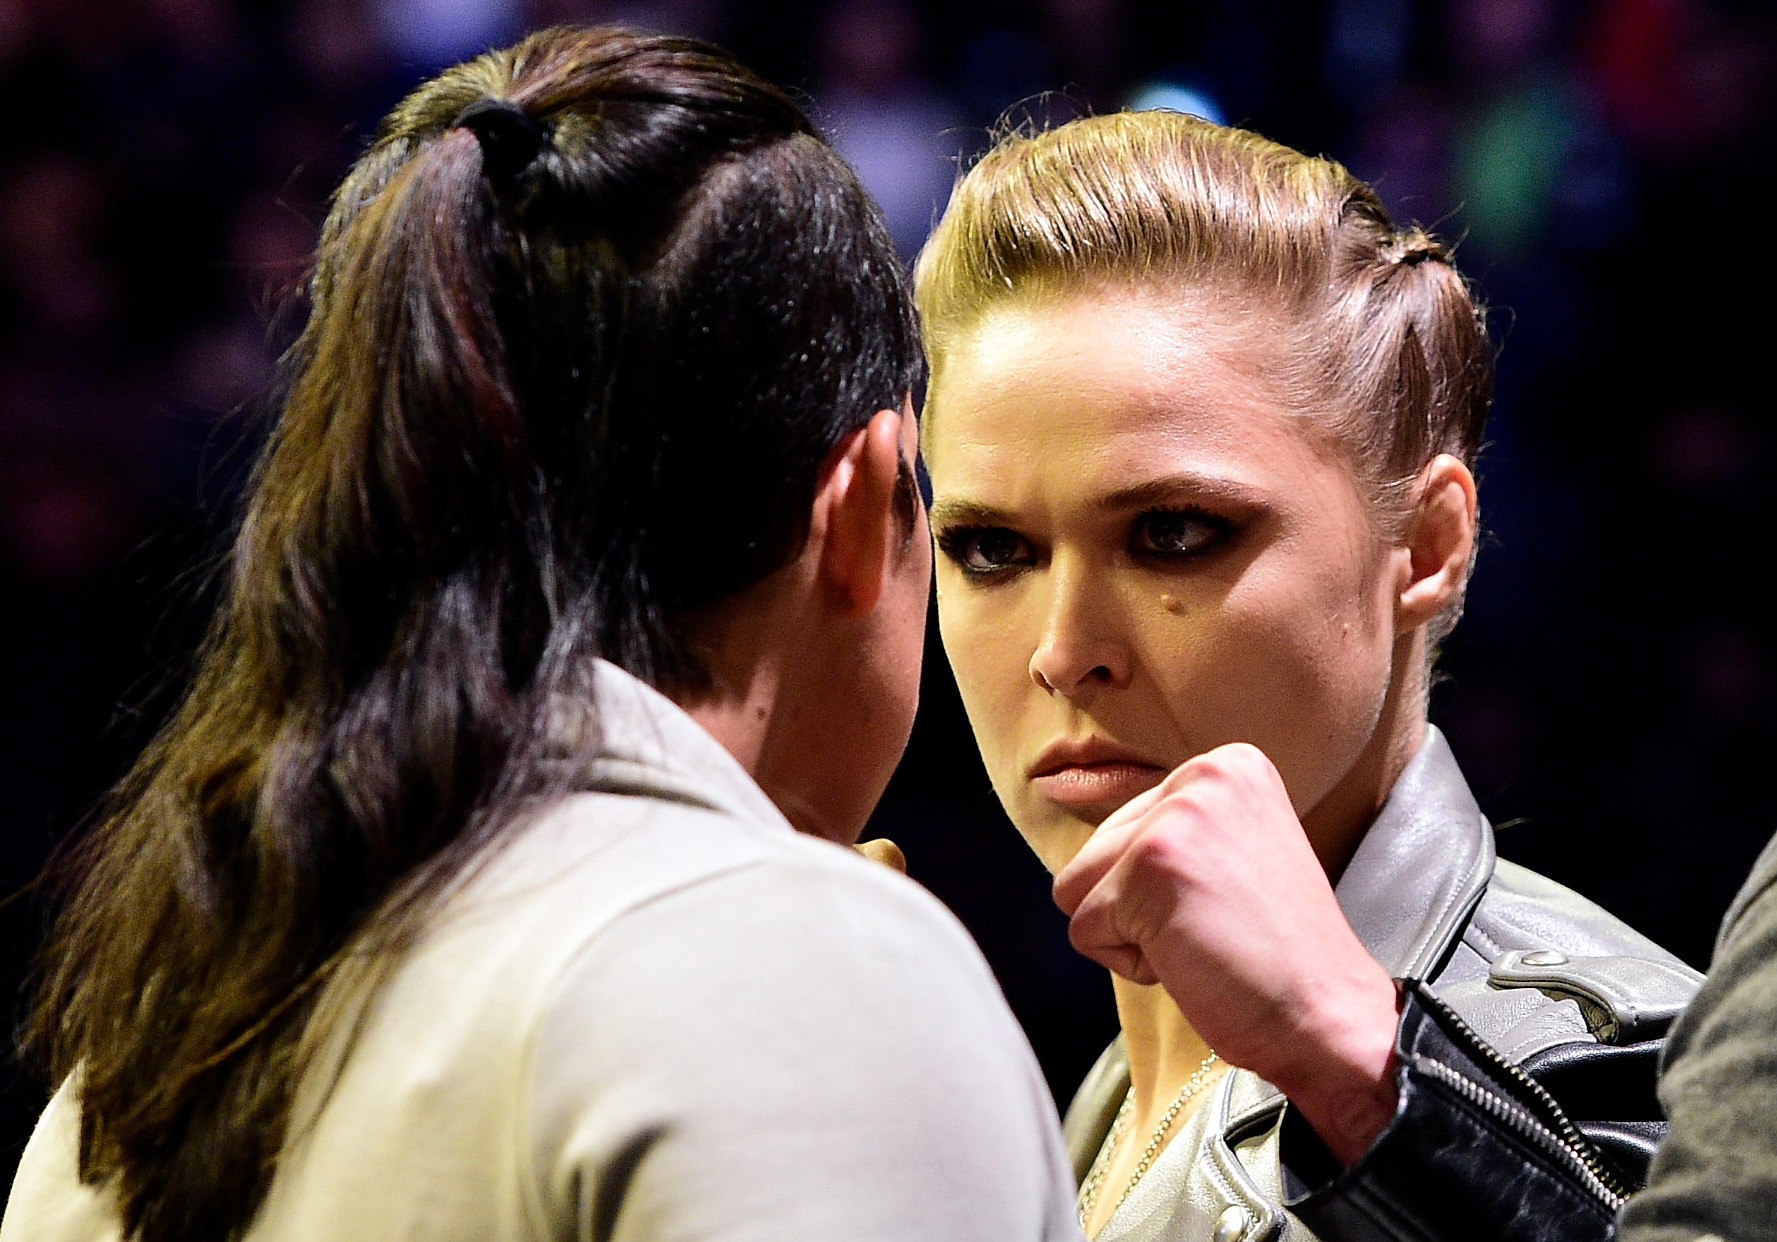 NEW YORK, NY - NOVEMBER 11: (R-L) UFC 207 opponents Ronda Rousey and Amanda Nunes face off during the UFC 205 weigh-in inside Madison Square Garden on November 11, 2016 in New York City. (Photo by Mike Roach/Zuffa LLC/Zuffa LLC via Getty Images)